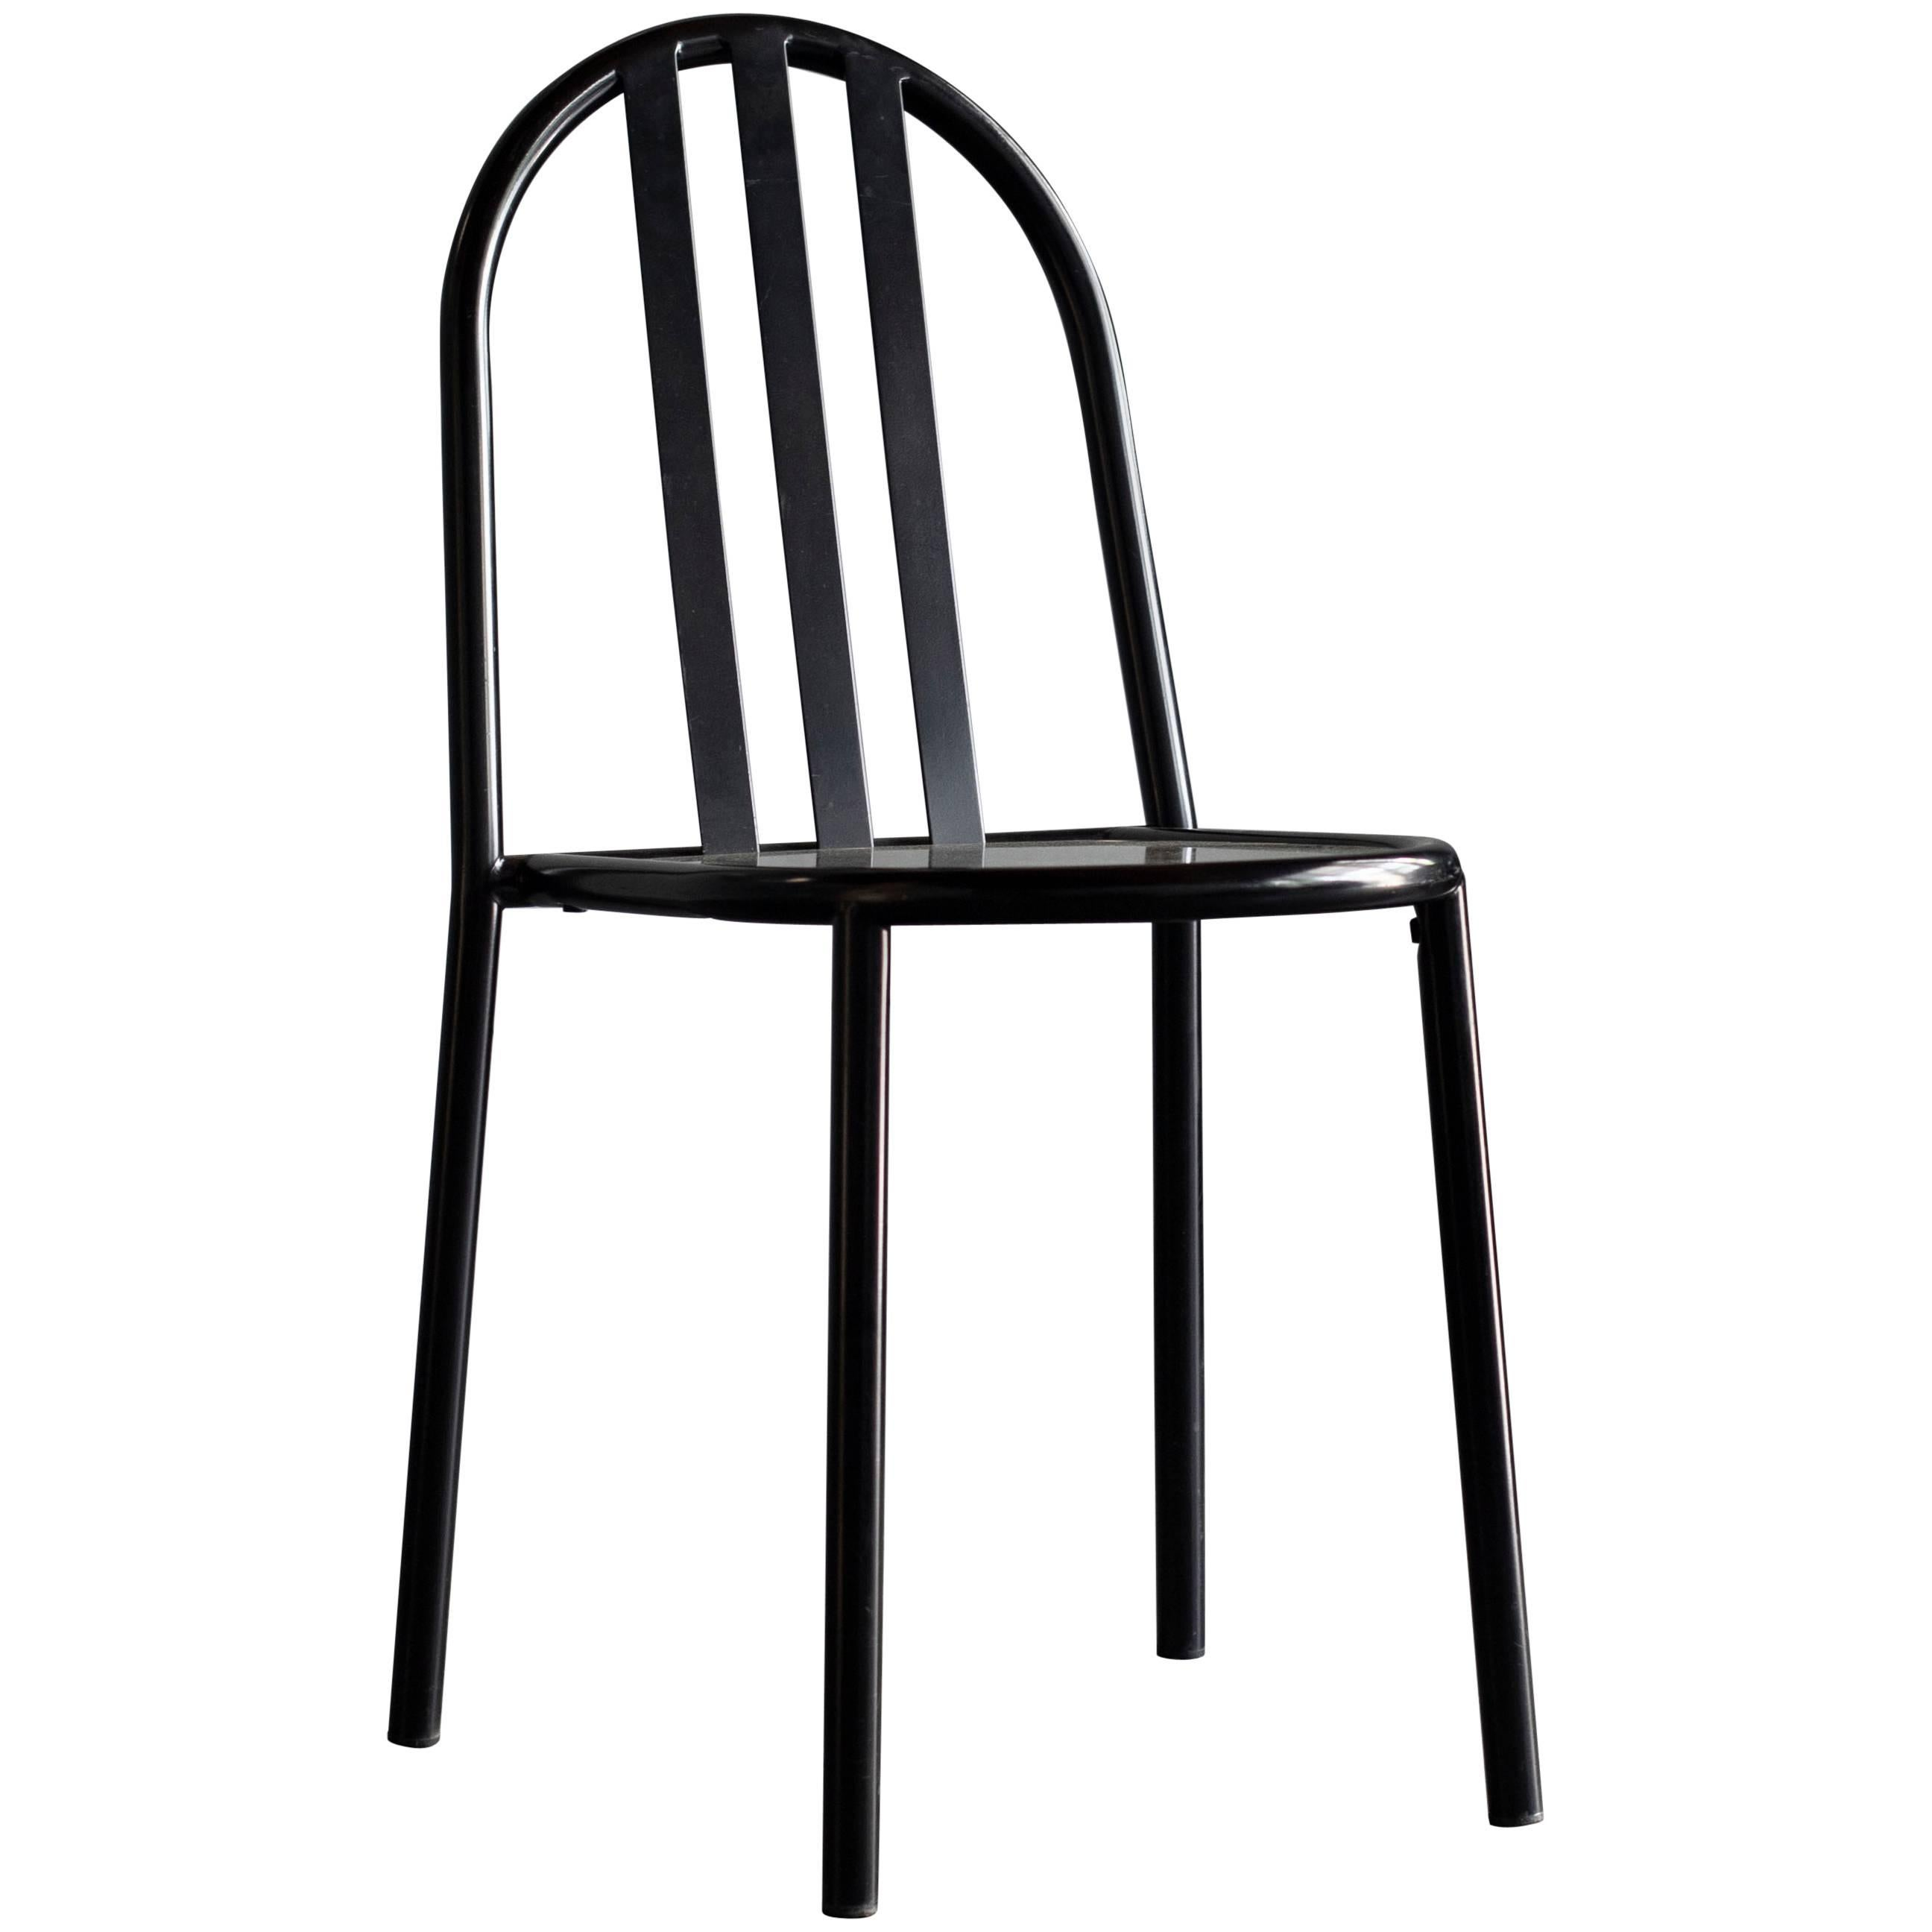 Robert MalletStevens Dining Chair For Sale at 1stdibs